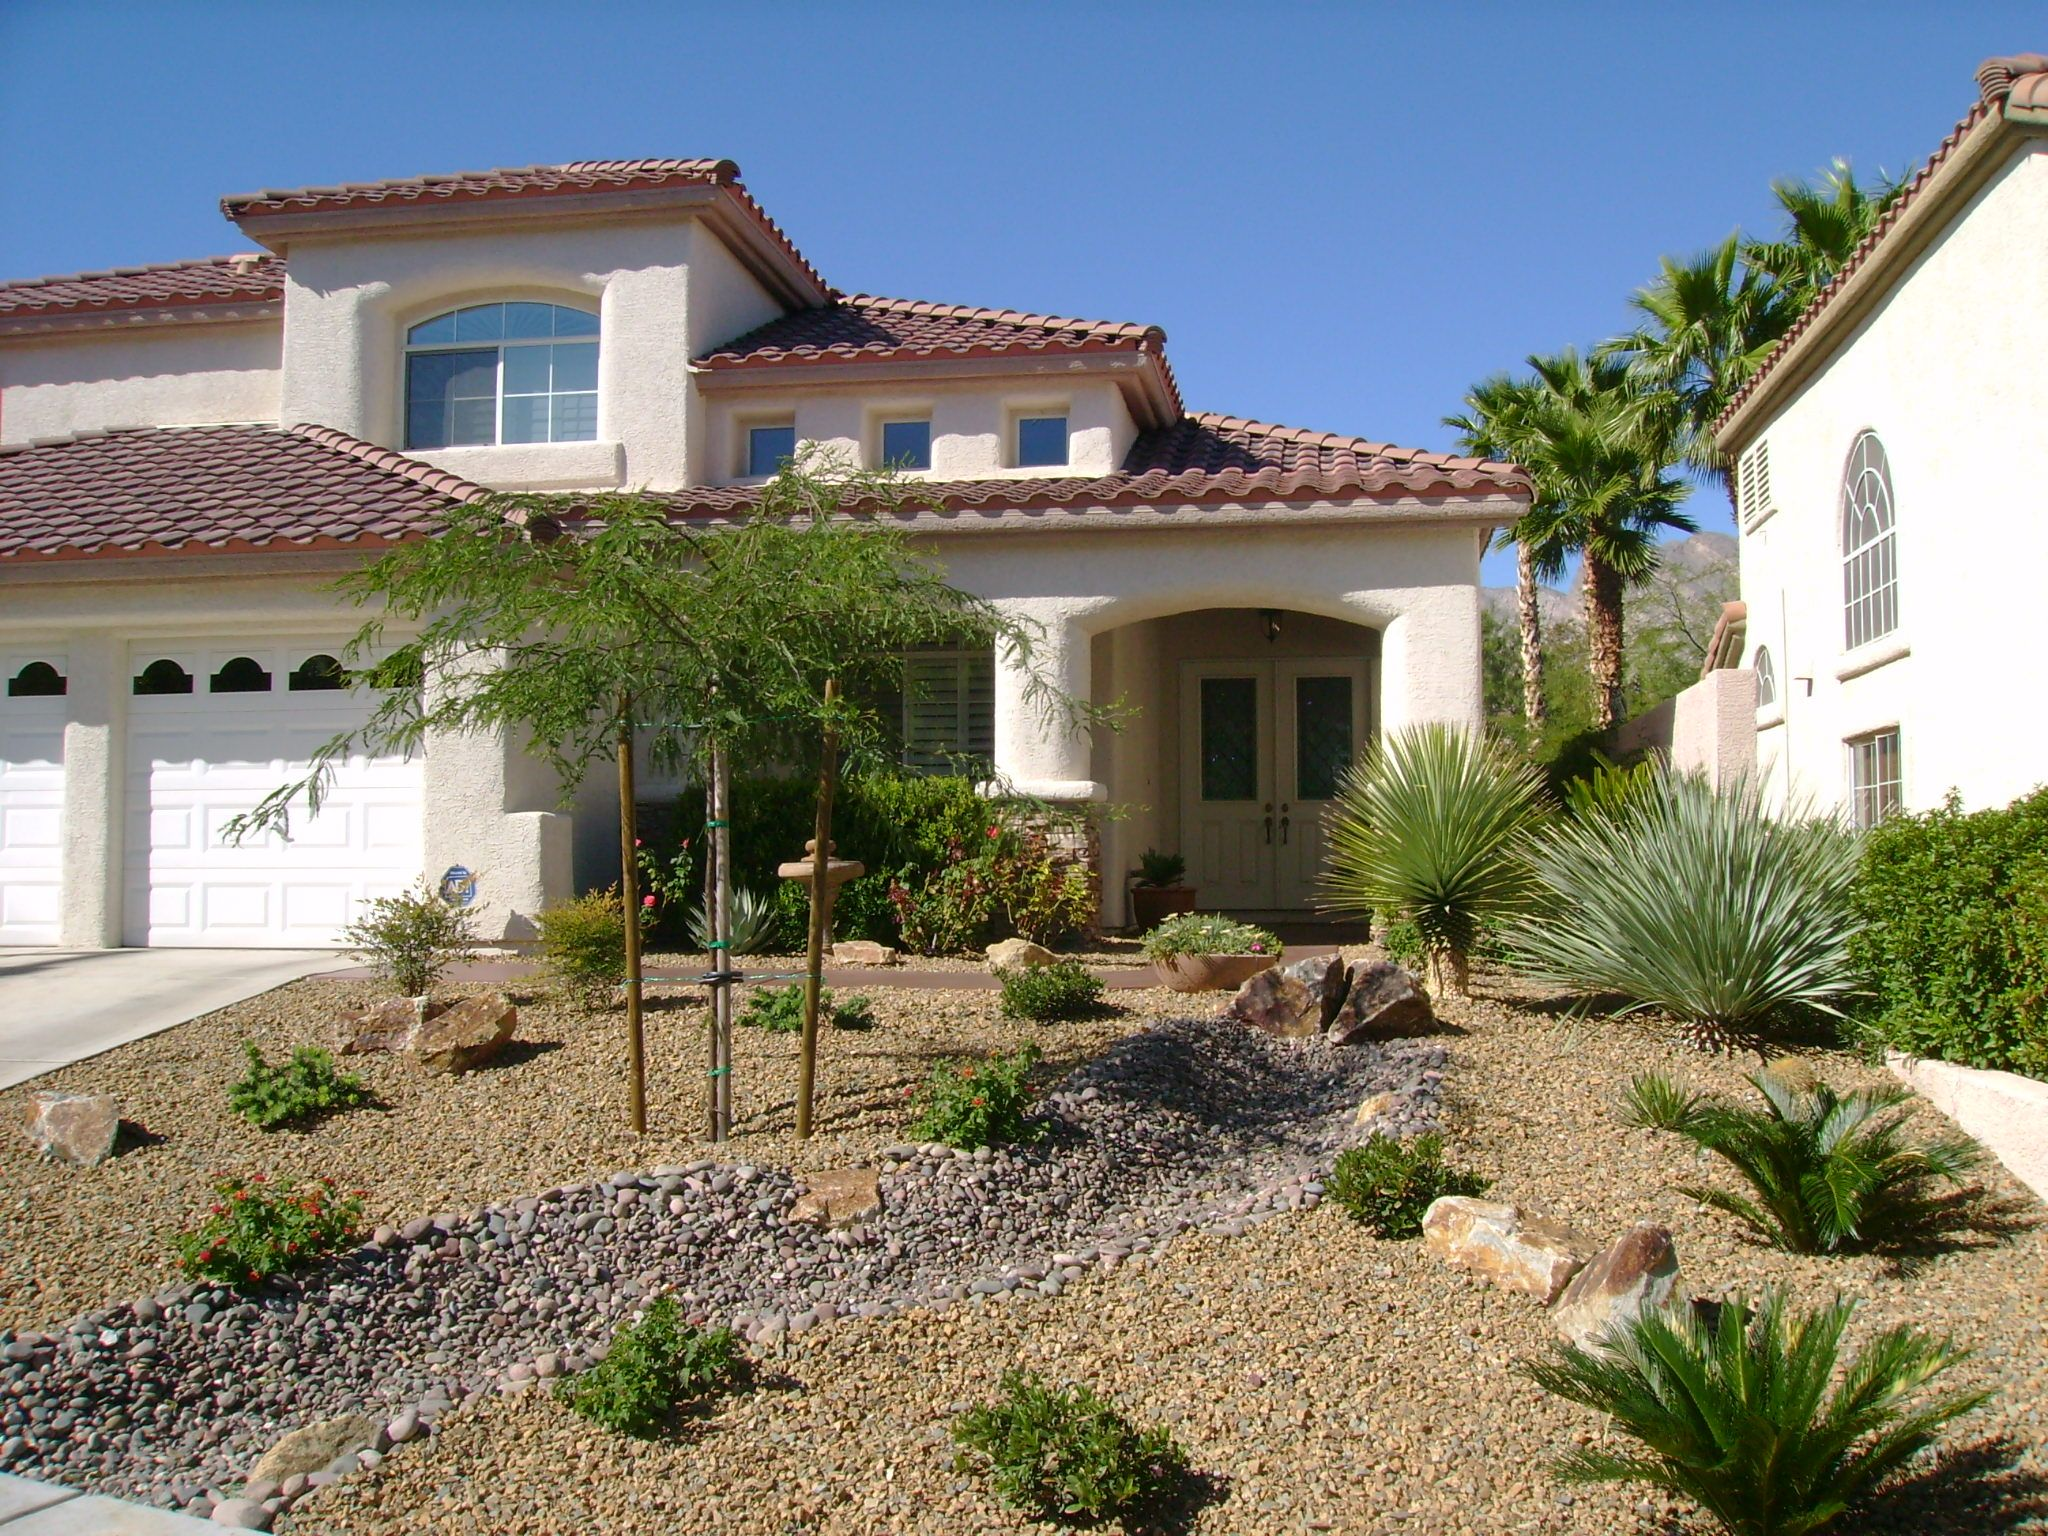 436 best desert landscaping ideas images on pinterest | desert